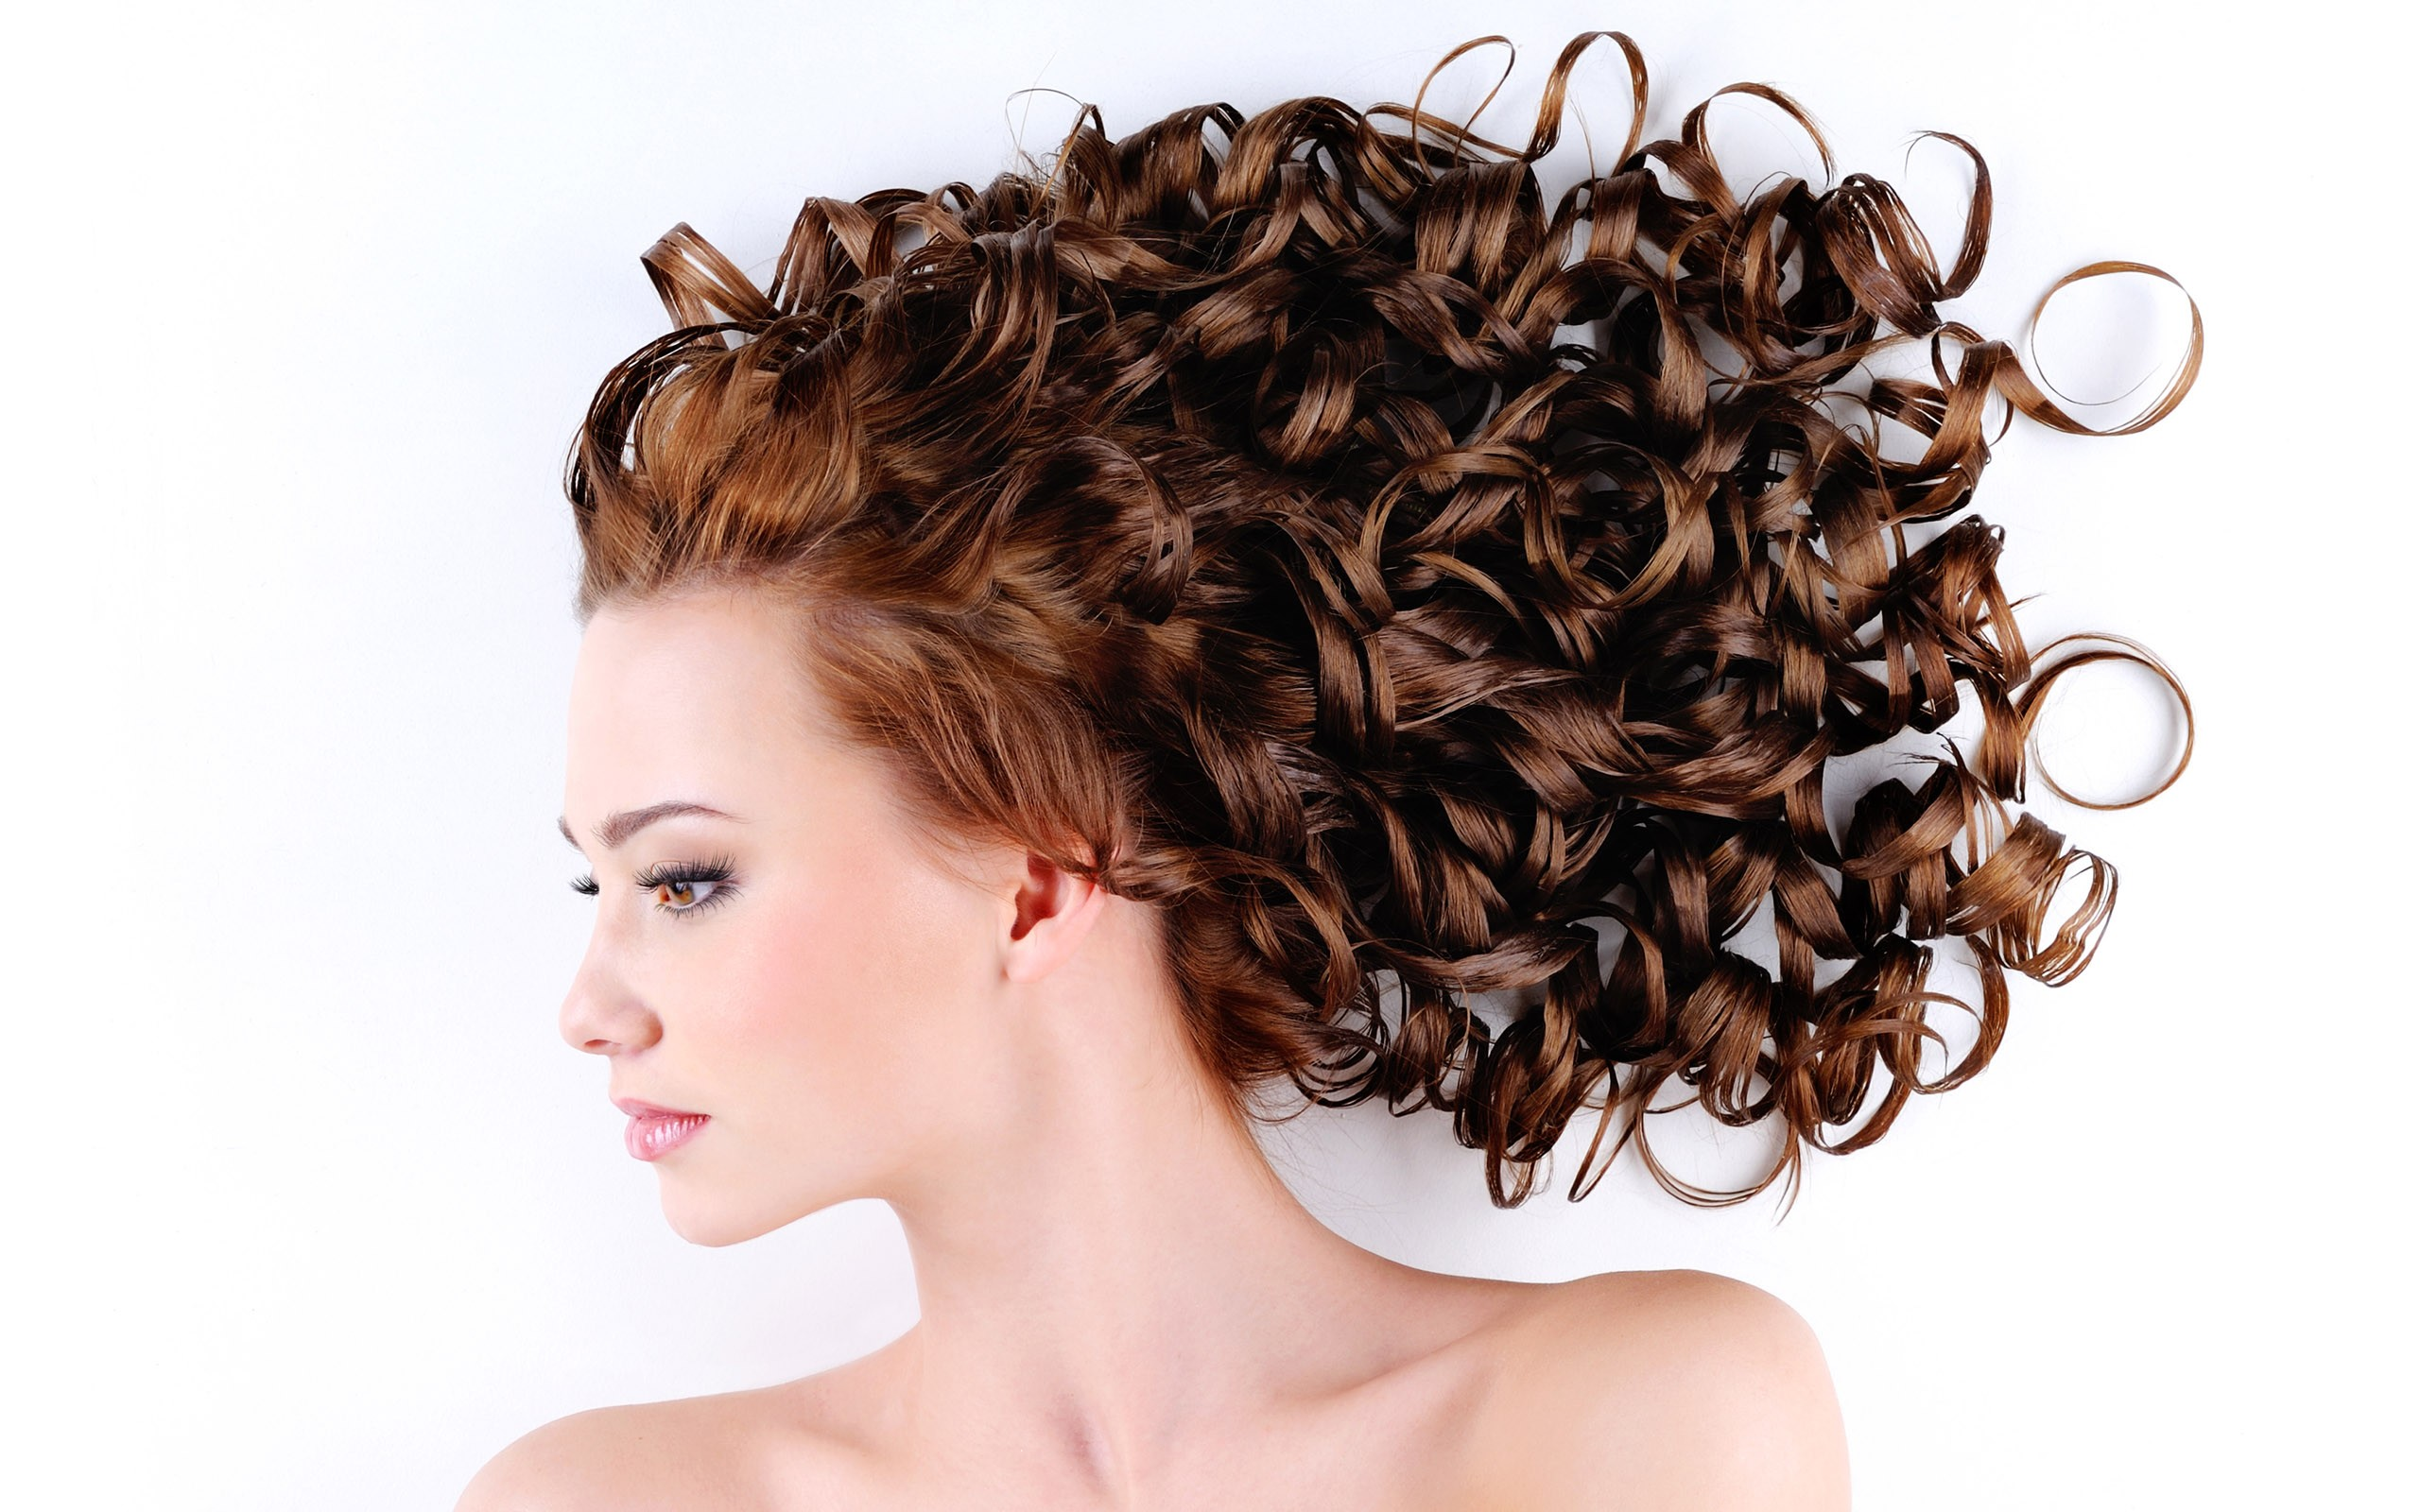 5 Products for Curly Hair